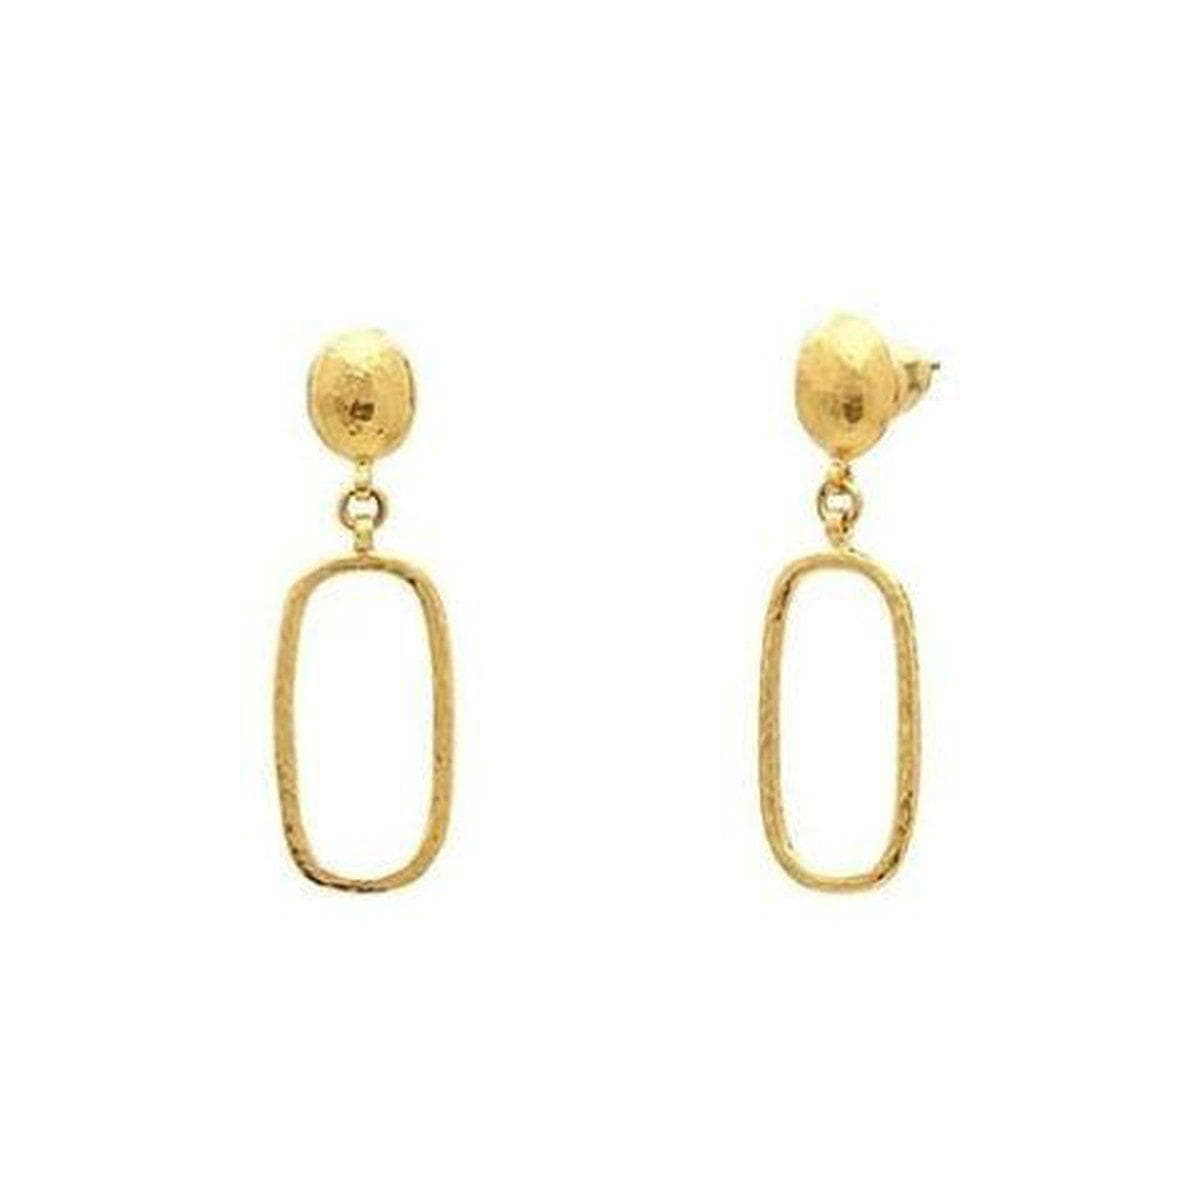 Delicate 22K Gold Earrings - E-PL-RTL-SD-JT-GURHAN-Renee Taylor Gallery